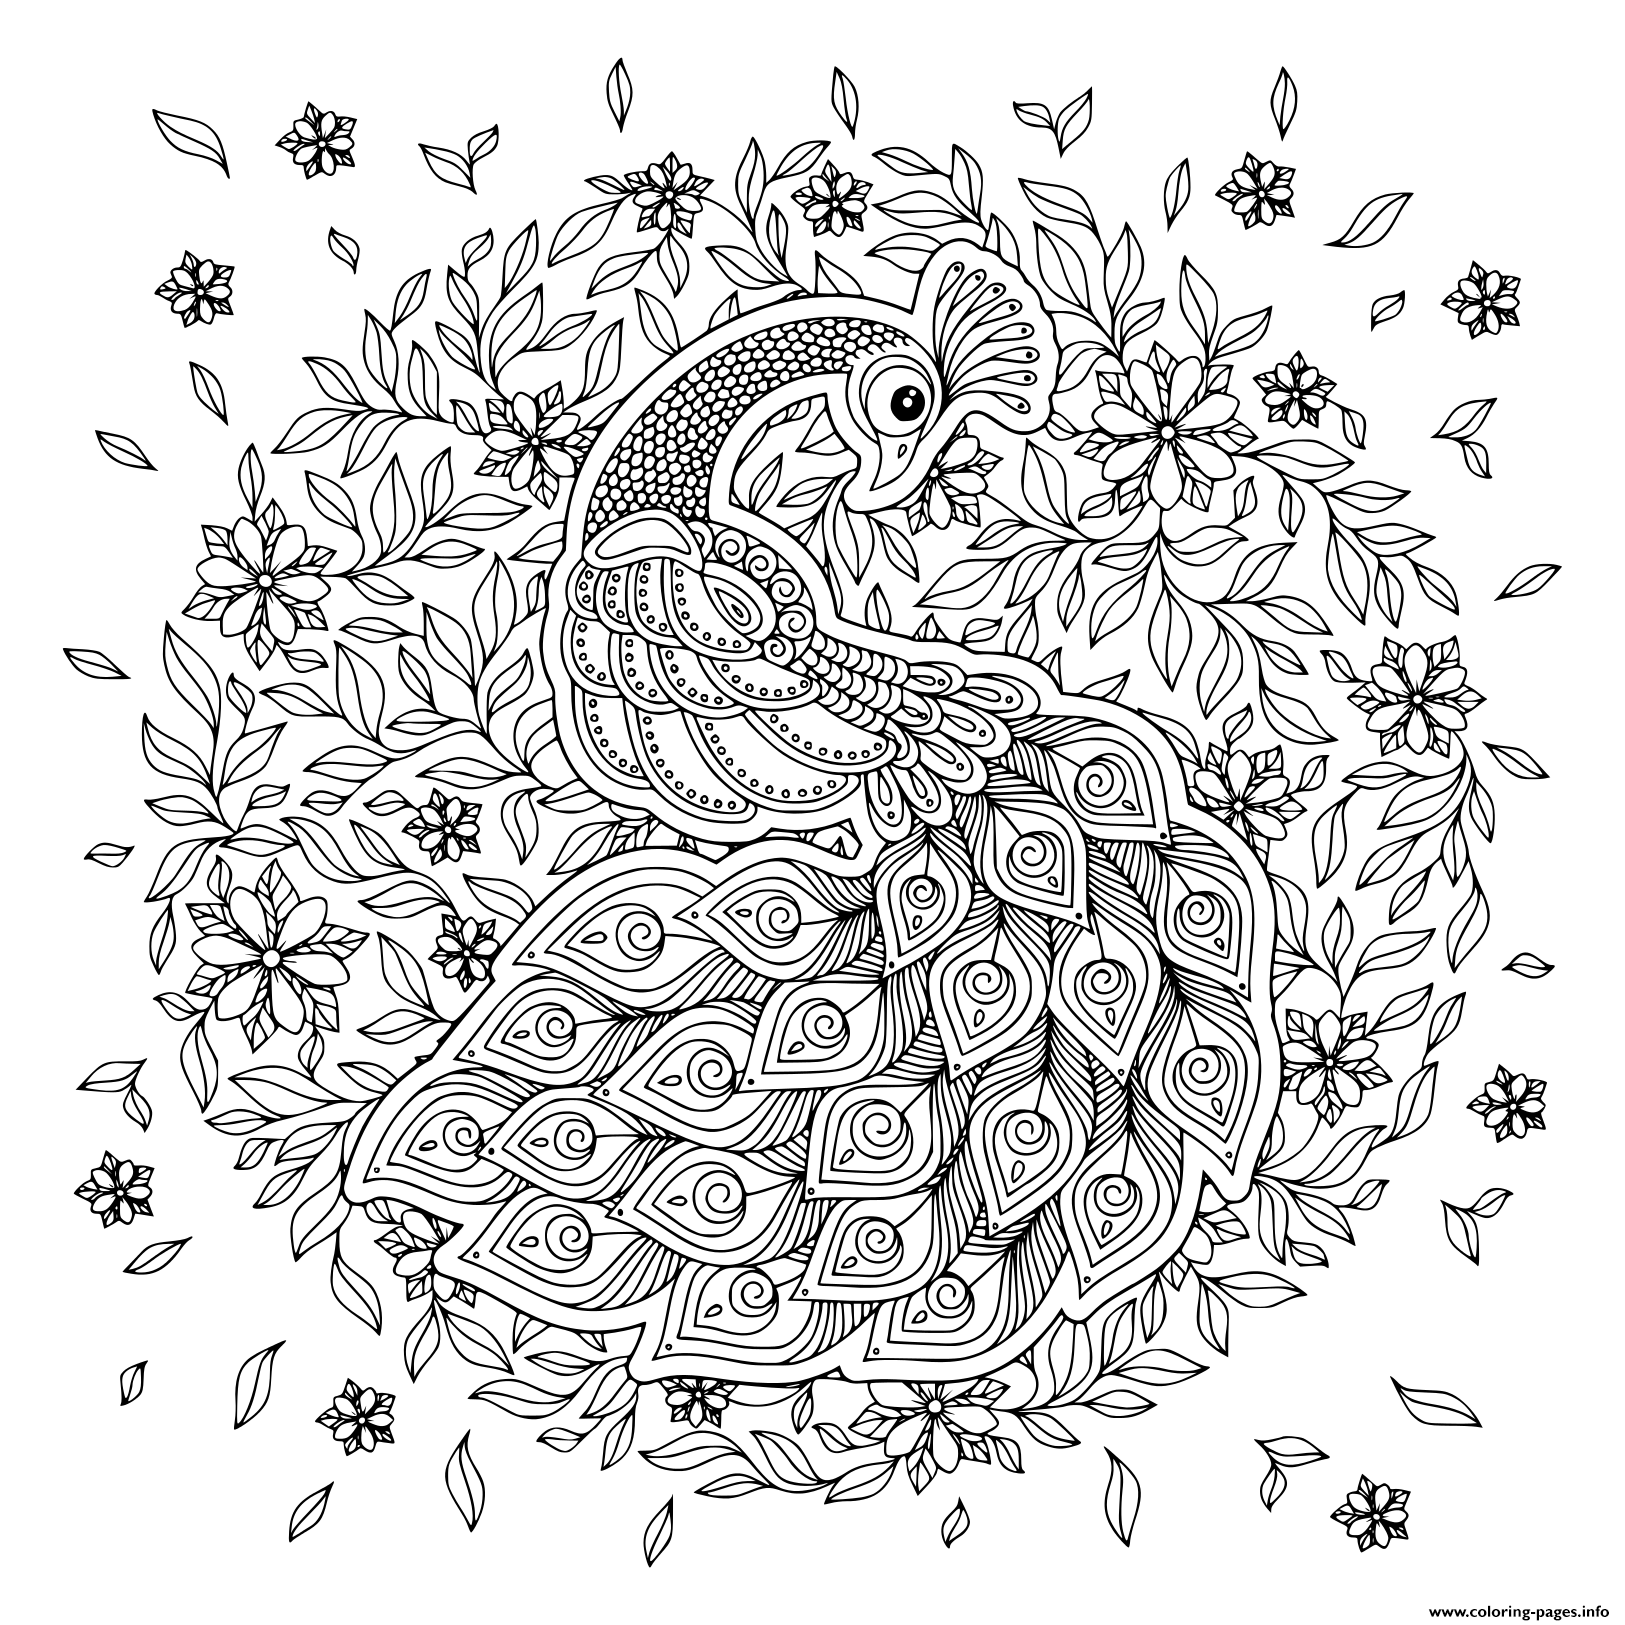 black and white coloring pages for adults sunflower coloring sheet coloring sheets for young adults black pages coloring adults white for and